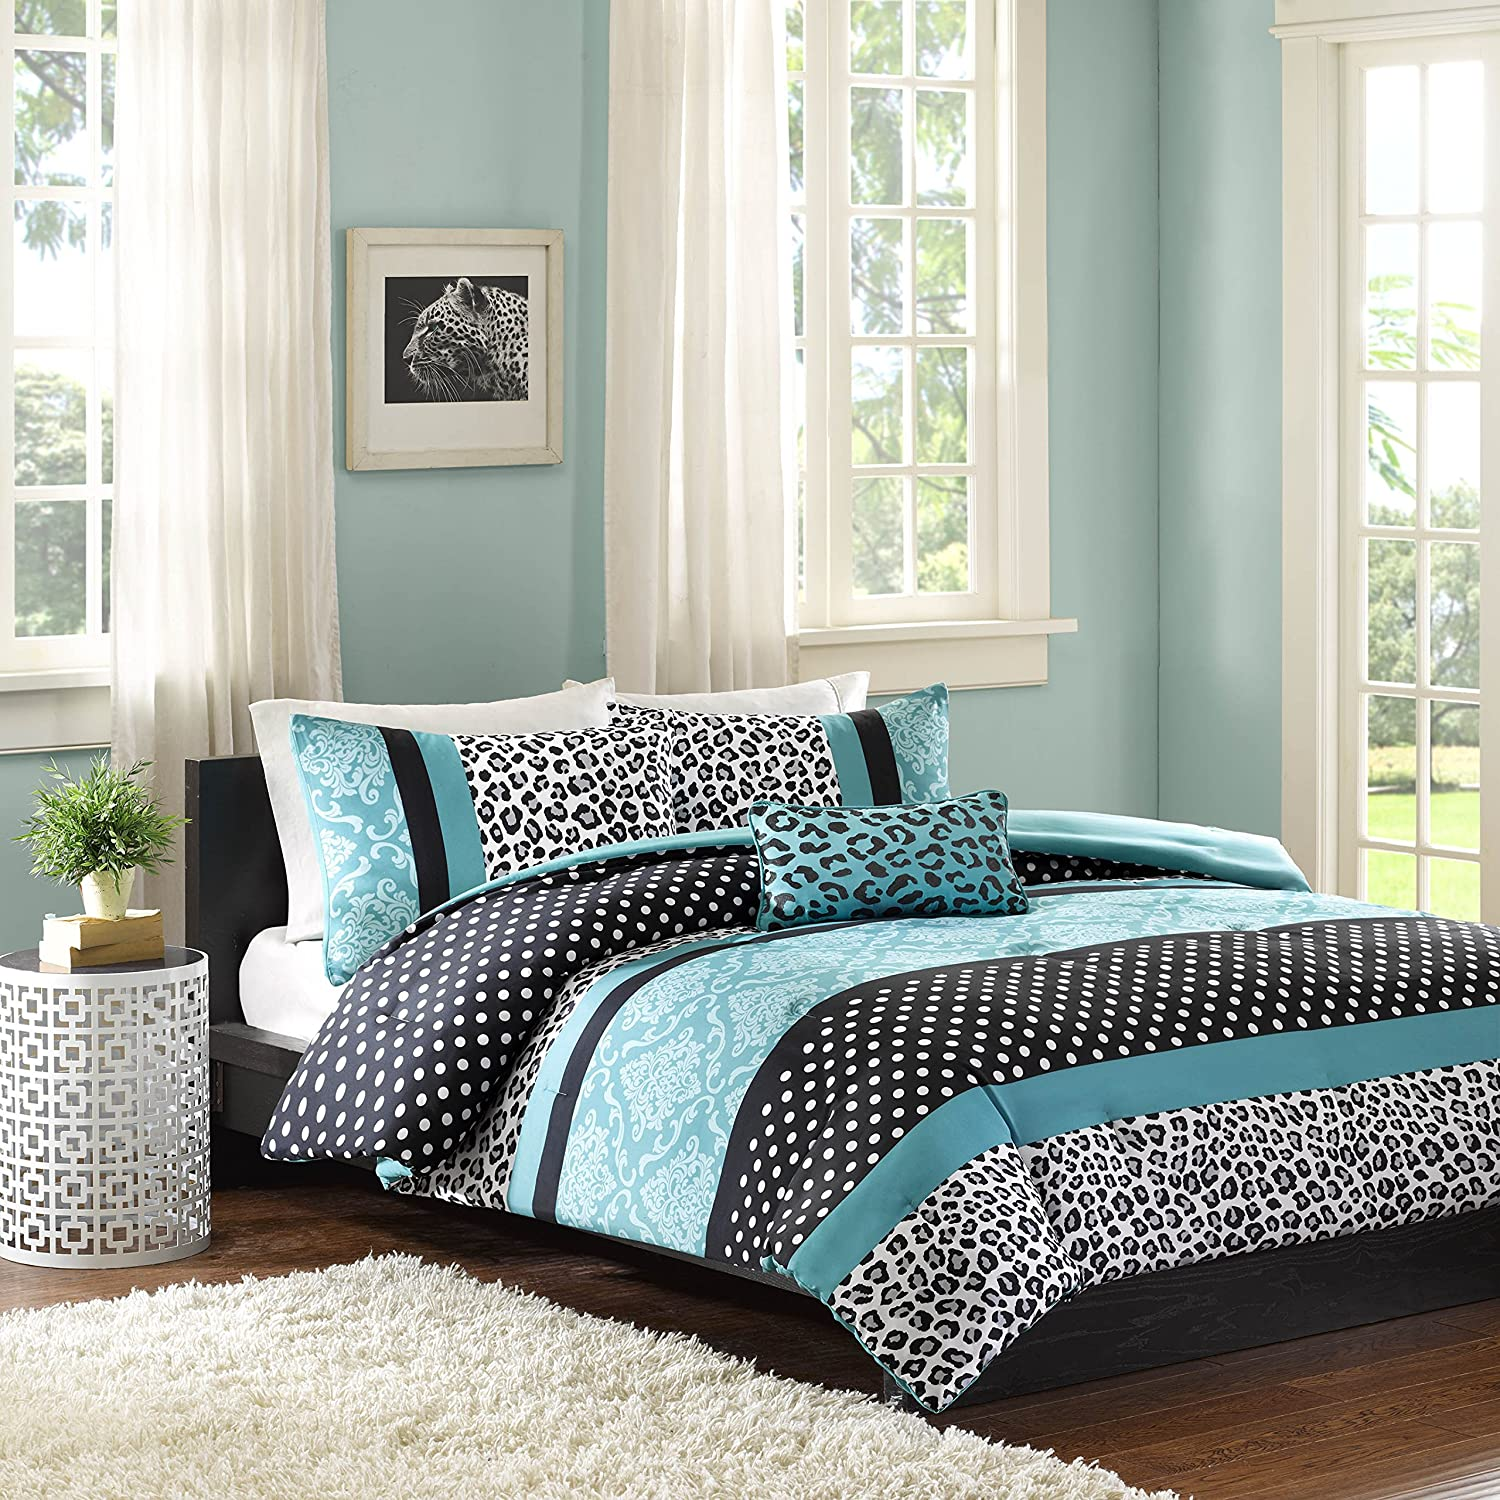 inside navy grey best bedding comforter baby teal gray coral and blue sets color